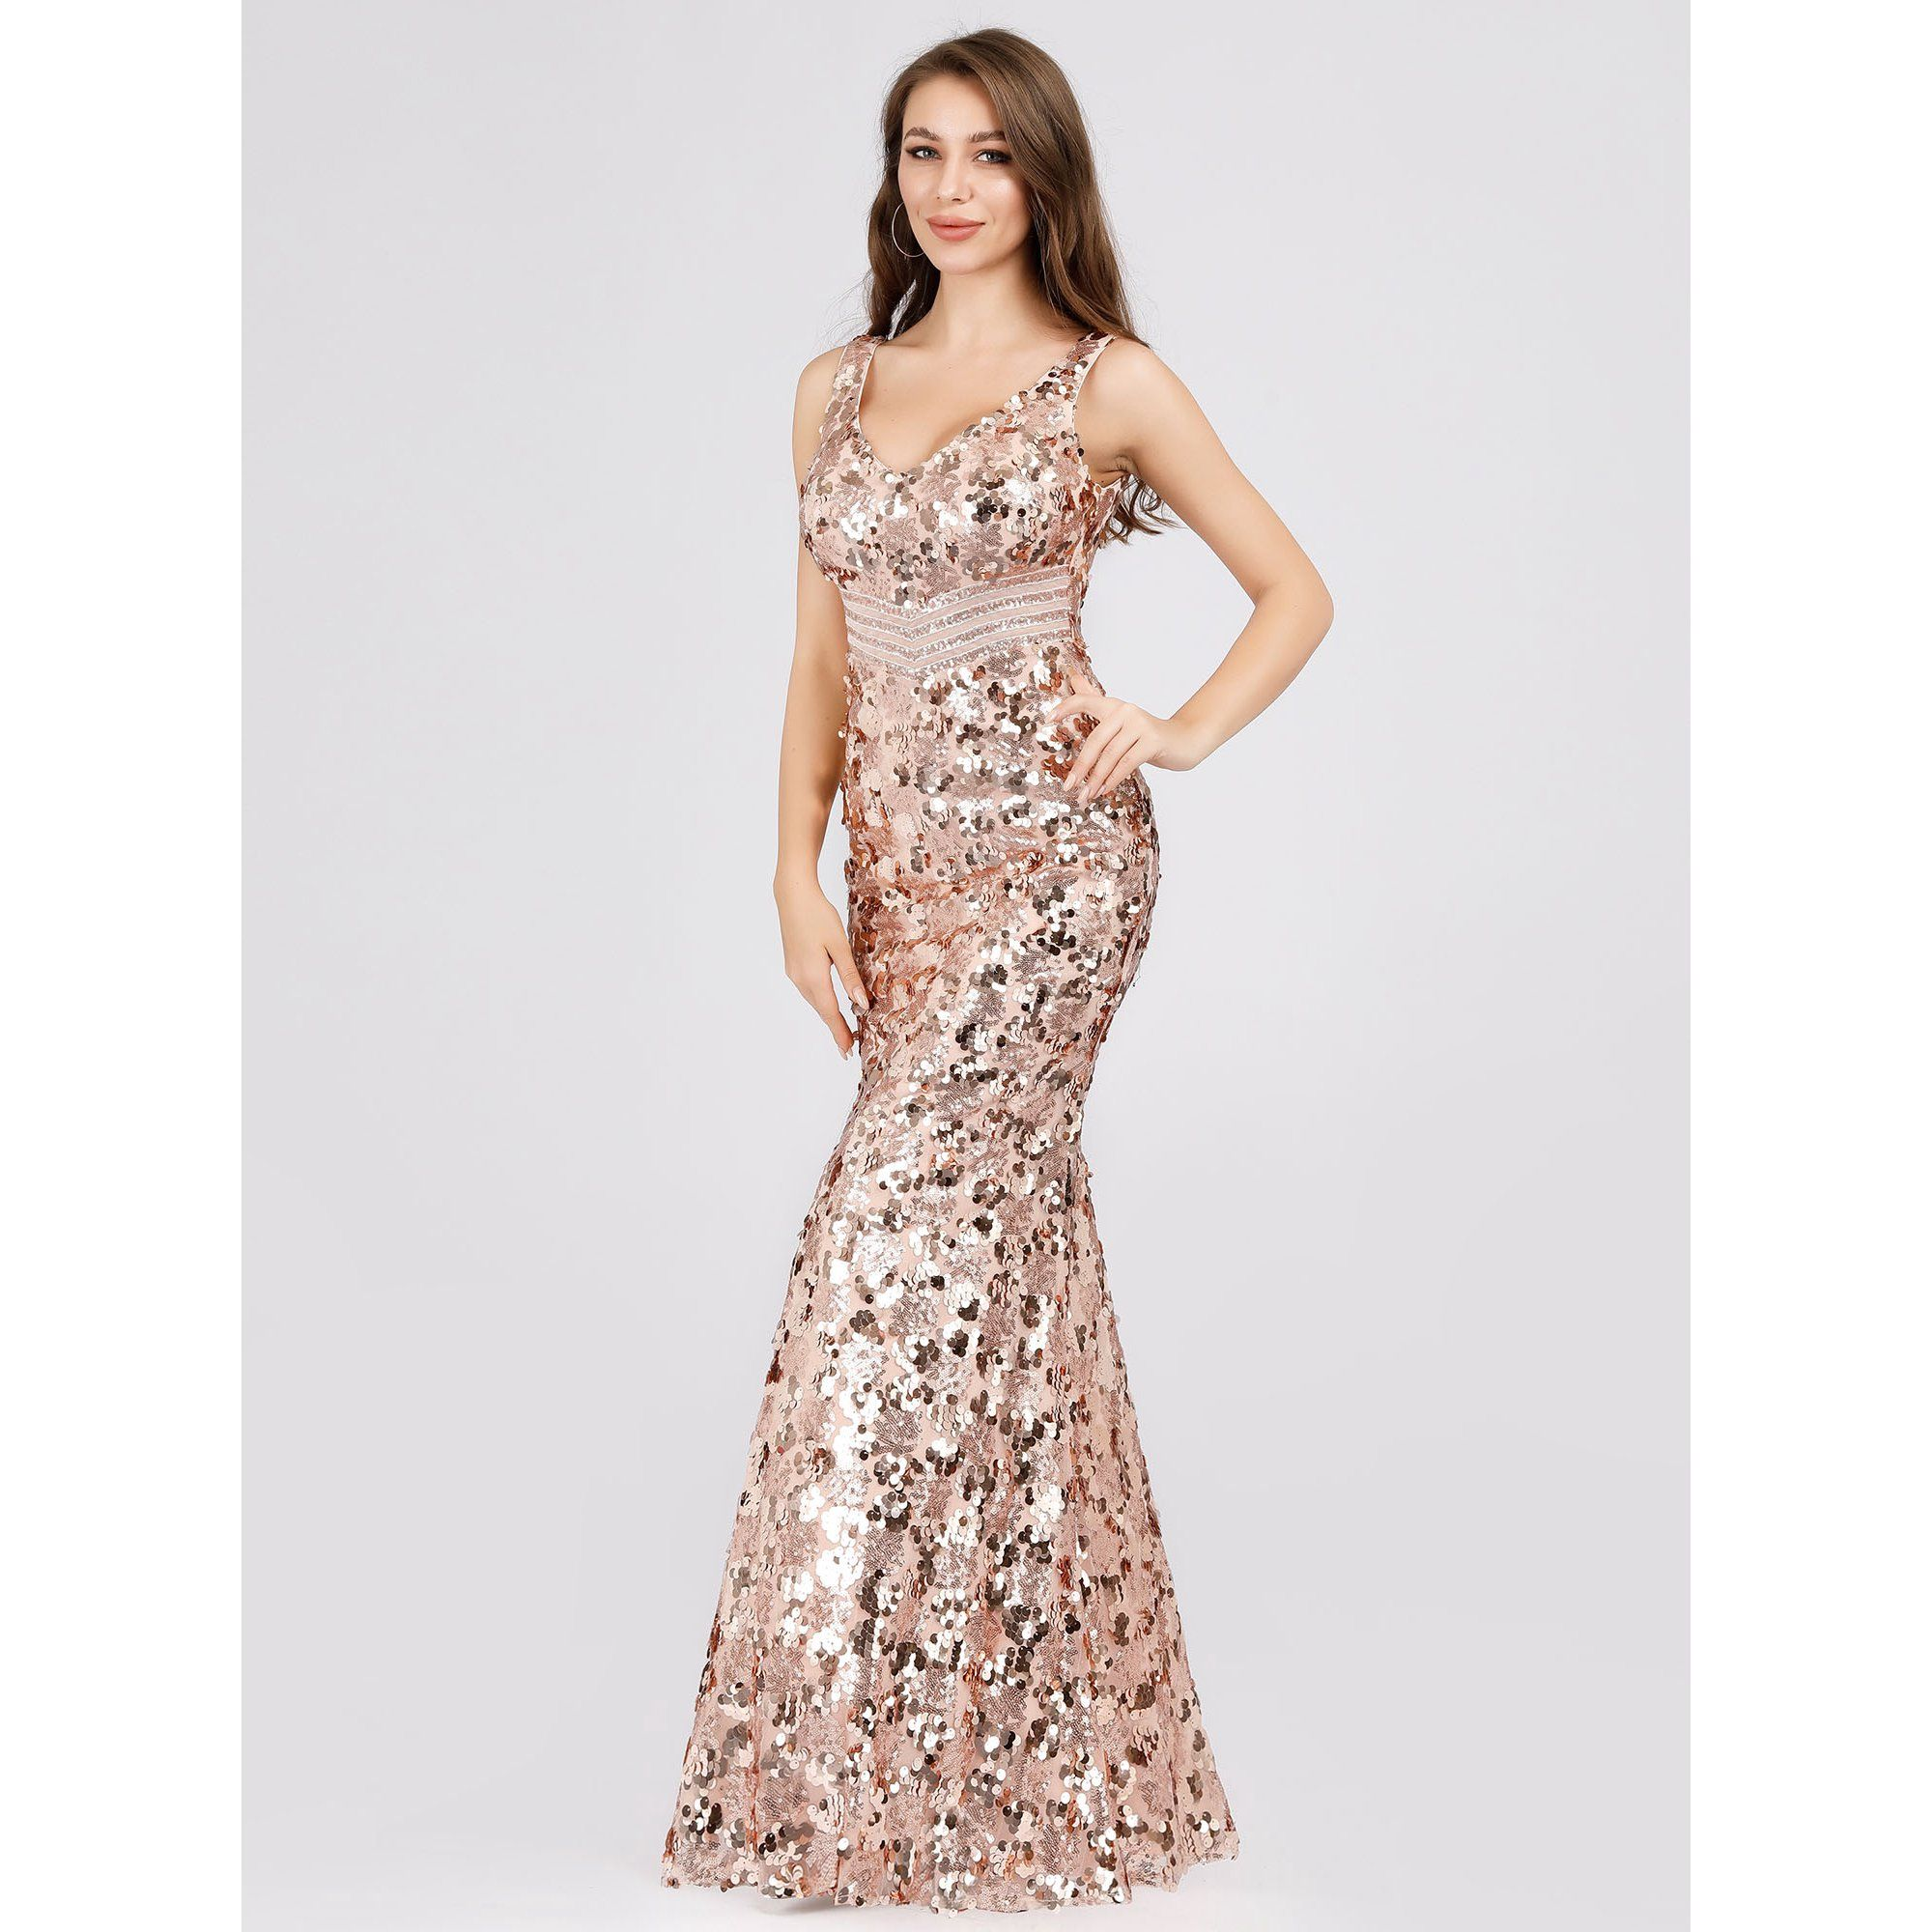 Ever Pretty Ever Pretty Womens Mermaid Prom Dresses For Women 07872 Gold Us4 Walmart Com In 2021 Prom Dresses Long Mermaid Sequin Prom Dresses Long Evening Party Gowns [ 2000 x 2000 Pixel ]